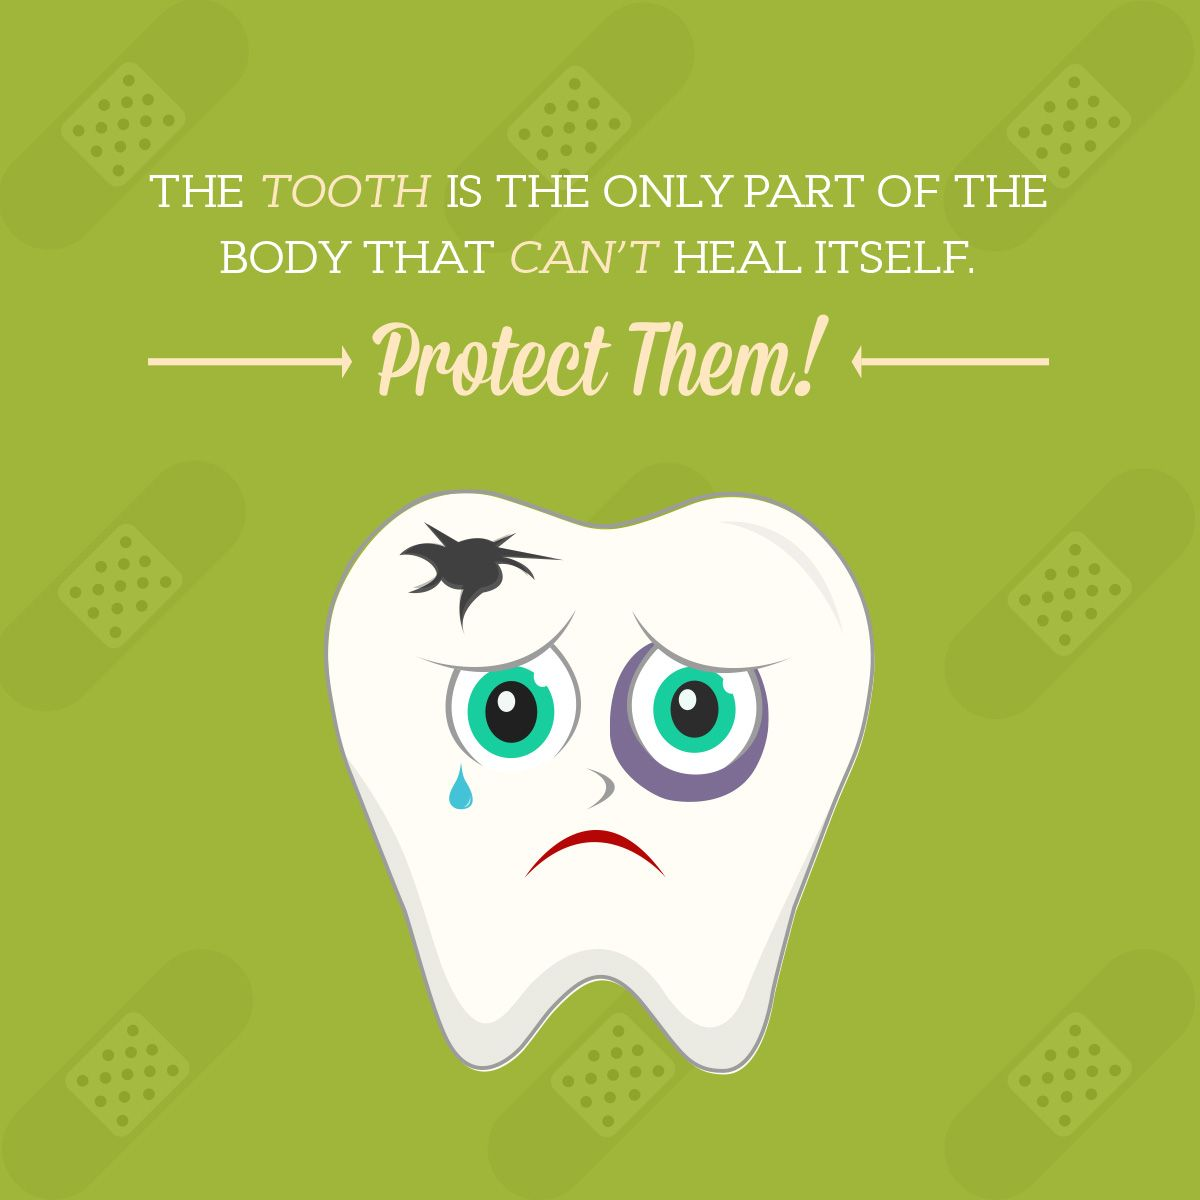 Need to Take Higher Care Of Your Teeth? Learn On e071f64c5ab475ca3ad2fca1a2a26a95